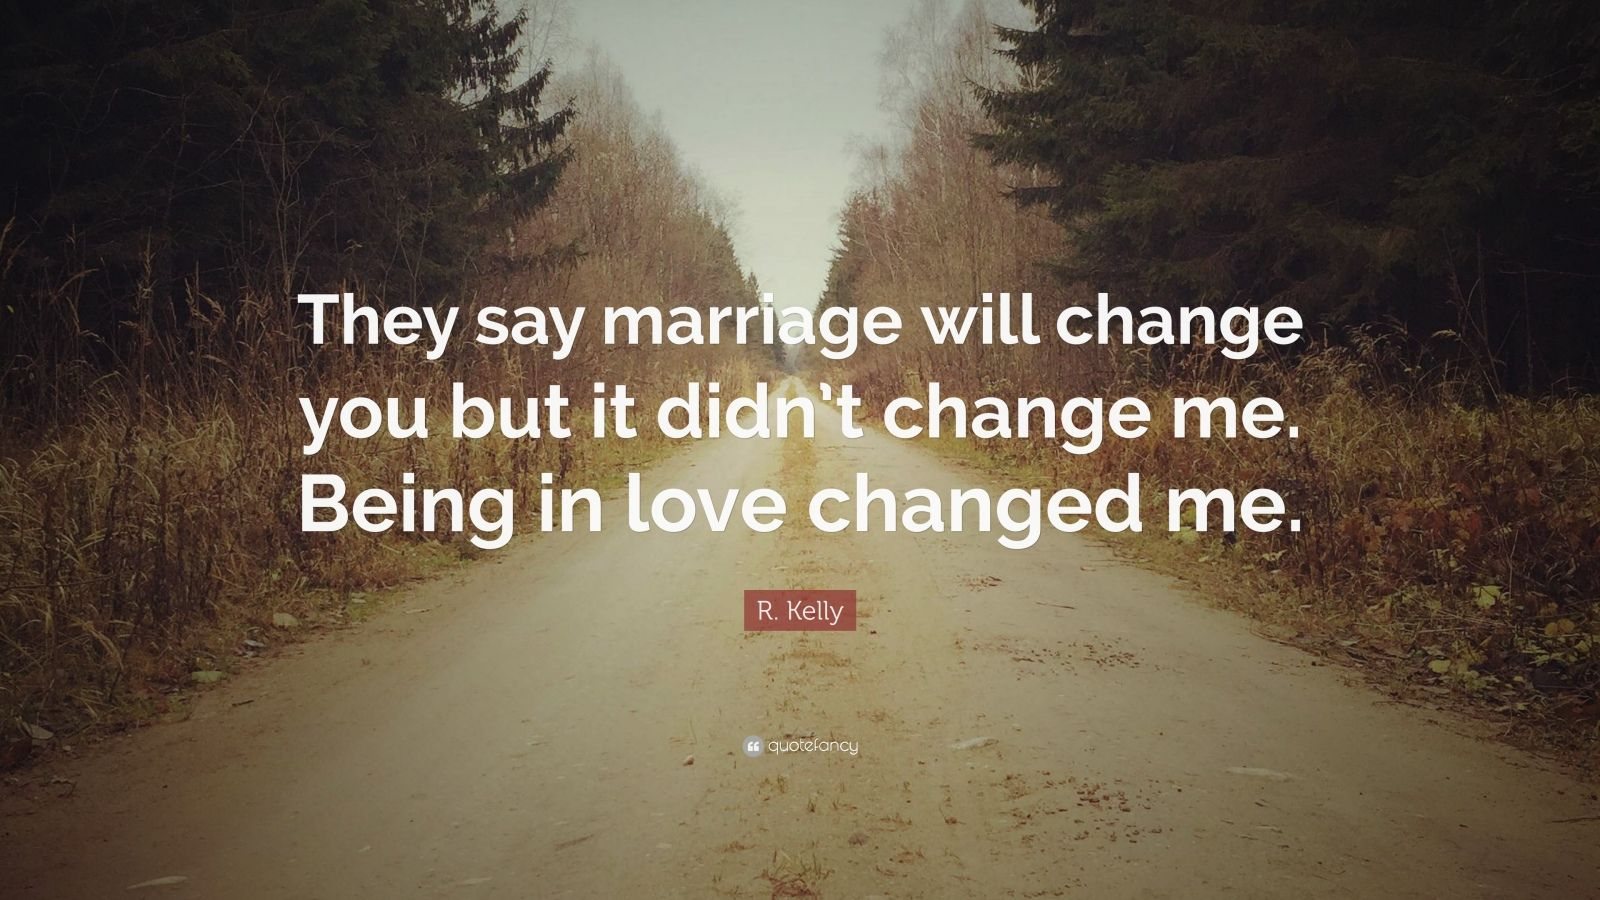 R Kelly Love Quotes : Kelly Quote: ?They say marriage will change you but it didnt ...